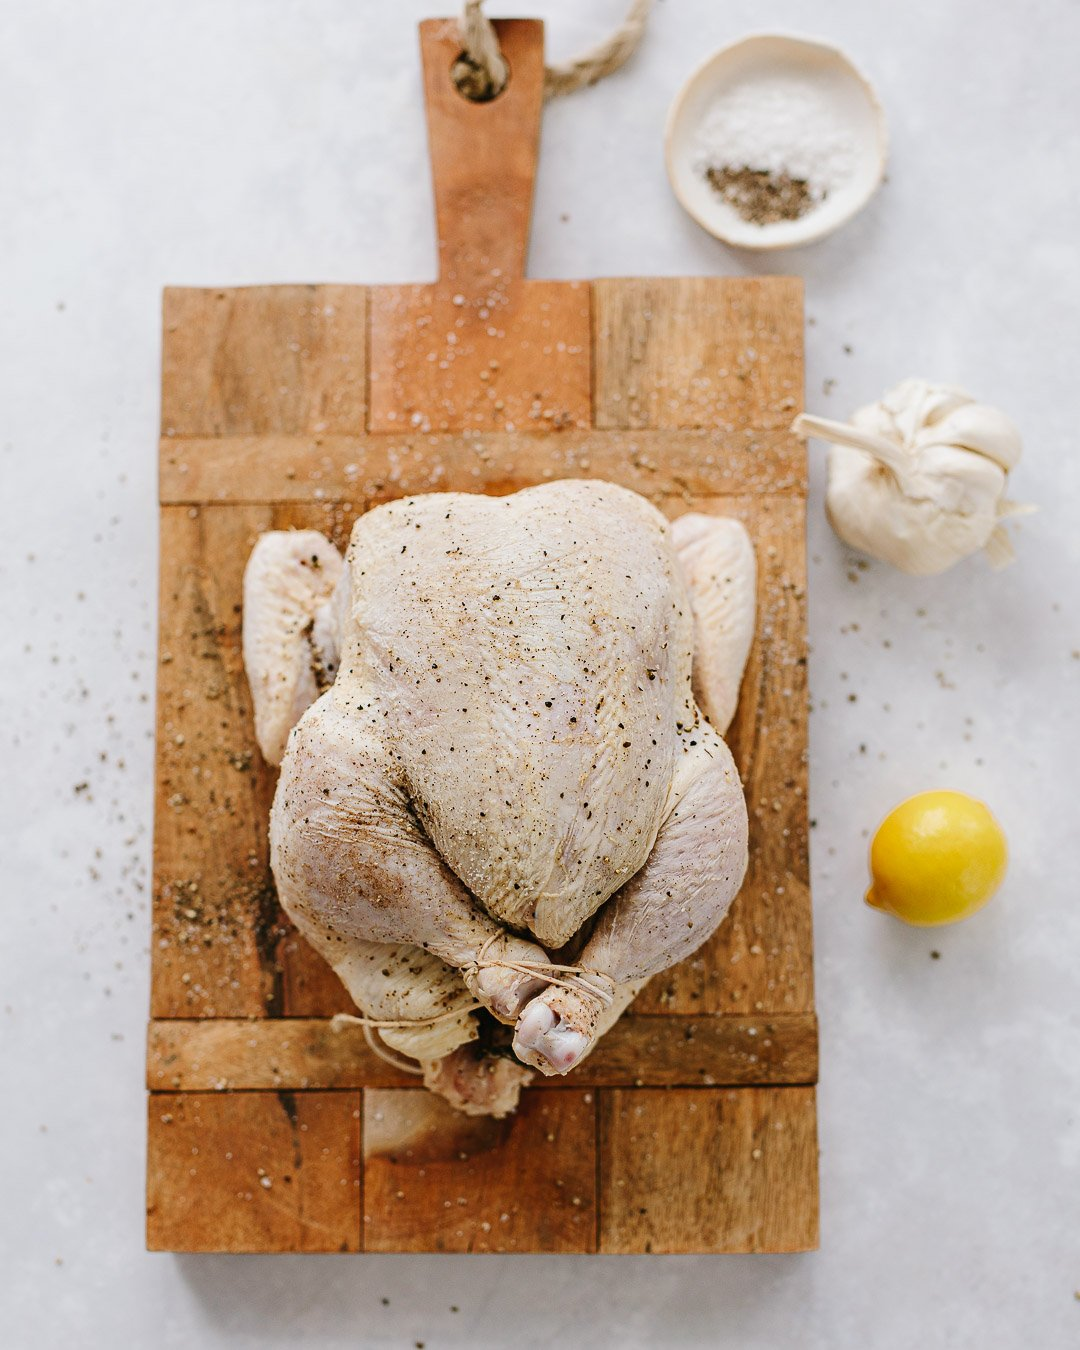 A whole raw chicken prepped on a cutting board with fresh lemons, garlic, thyme and salt and pepper.